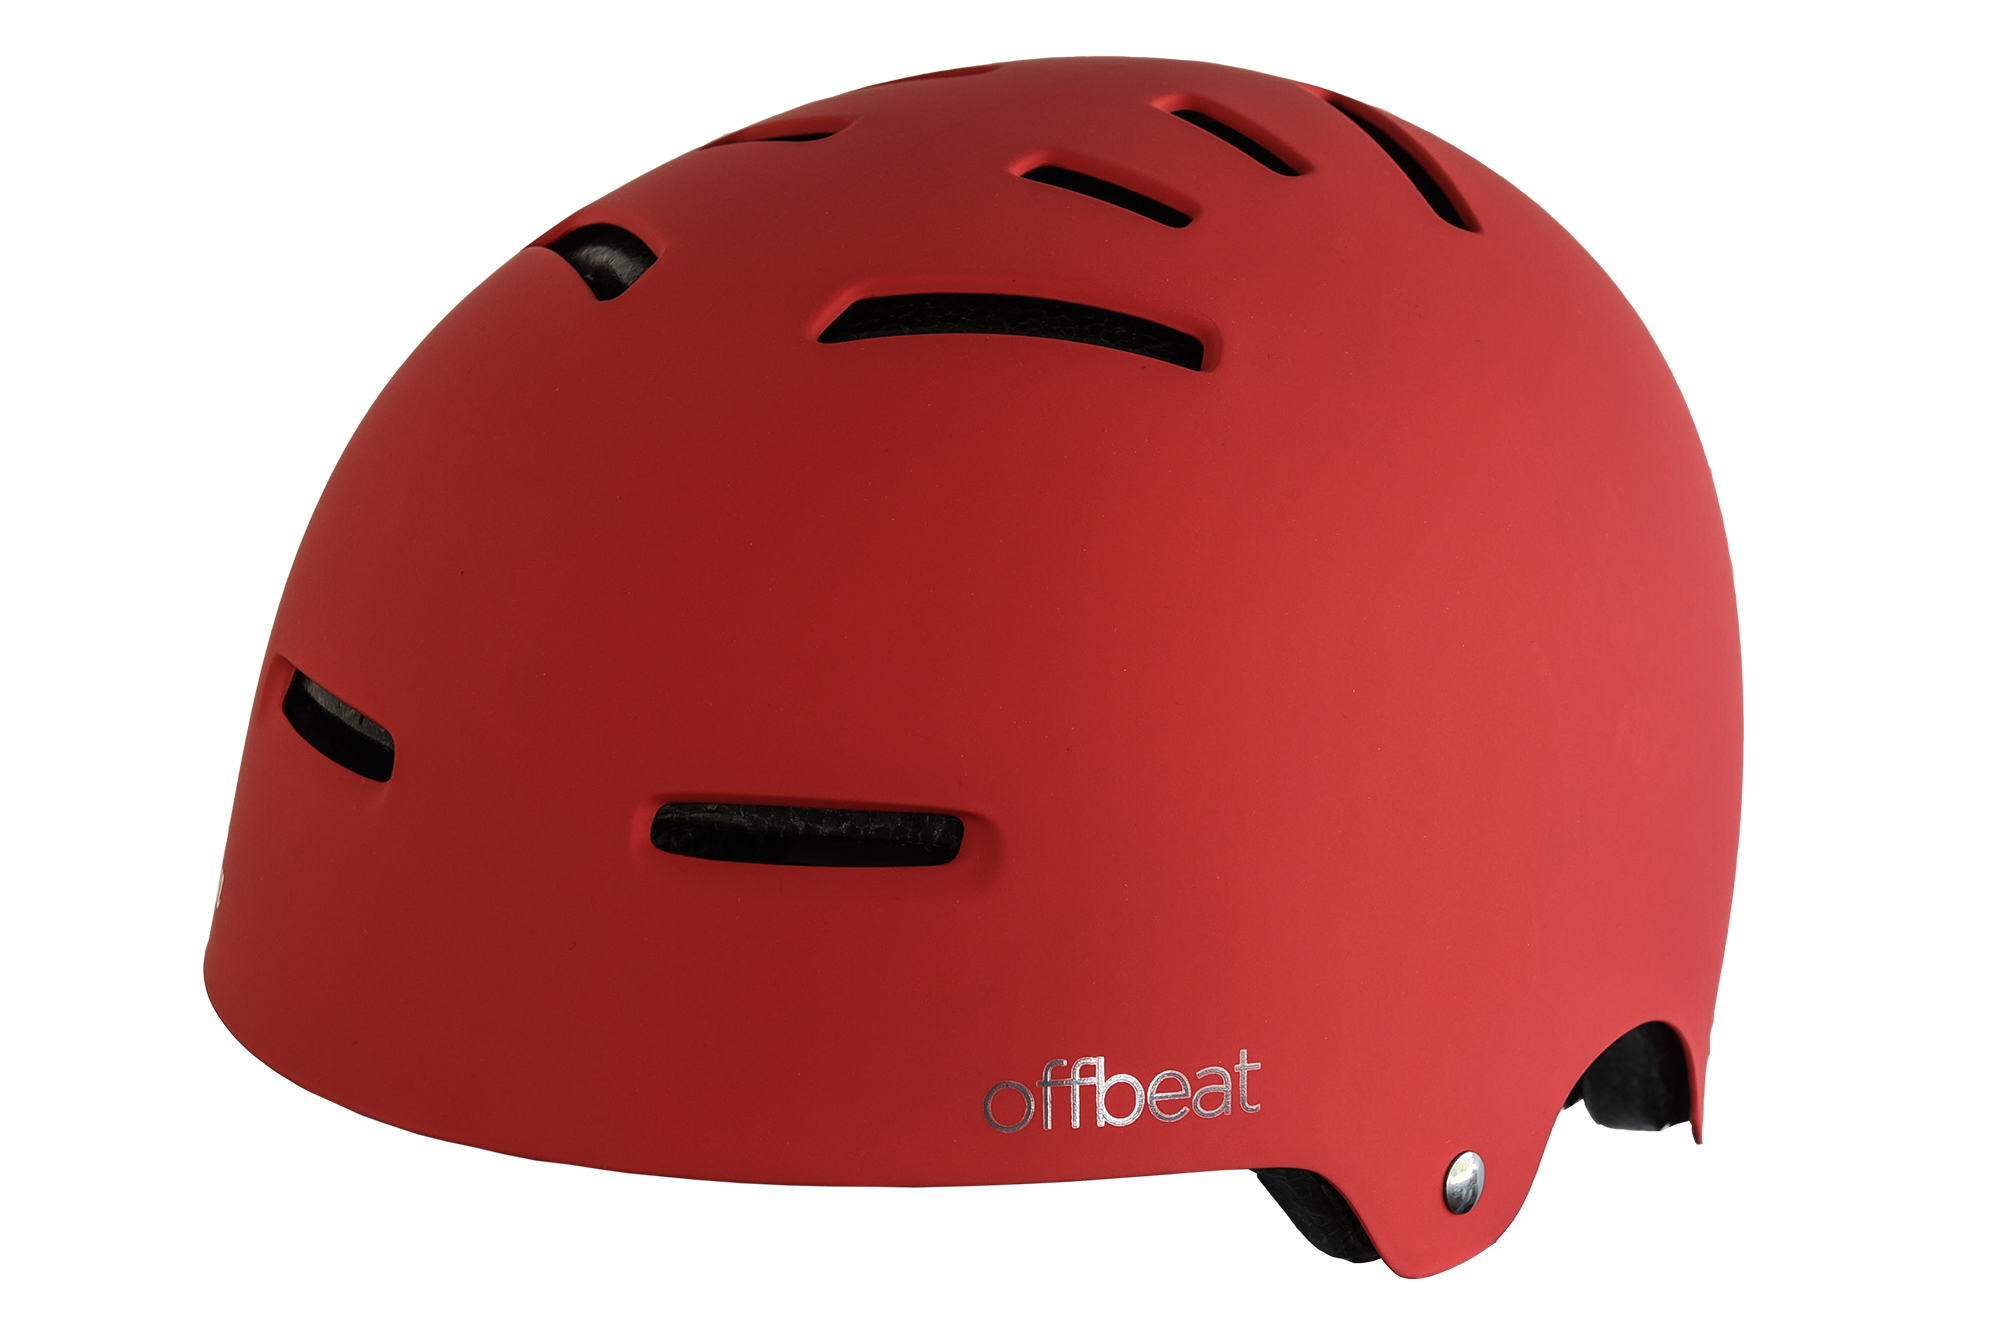 offbeat red front 34.jpg